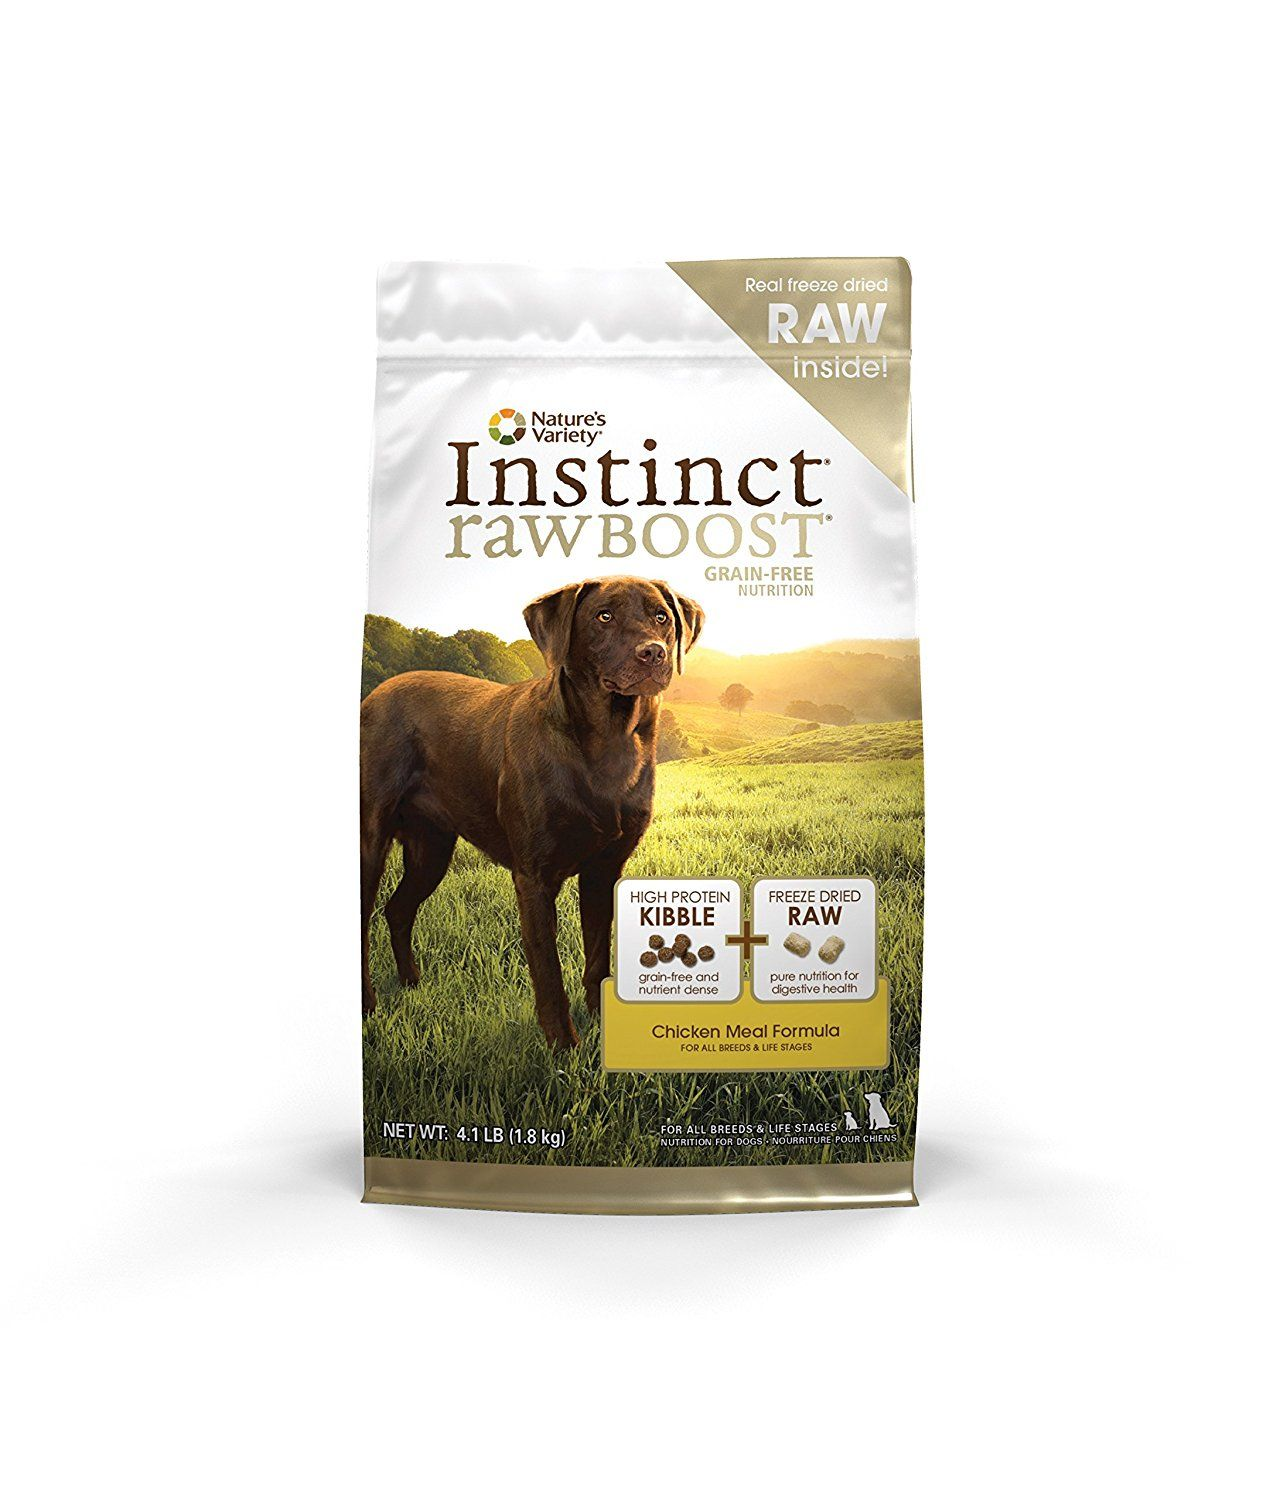 Nature S Variety Instinct Raw Boost Grain Free Chicken Meal Formula Dry Dog Food 4 1 Lb Bag See This Gre Raw Dog Food Recipes Dog Food Recipes Dry Dog Food